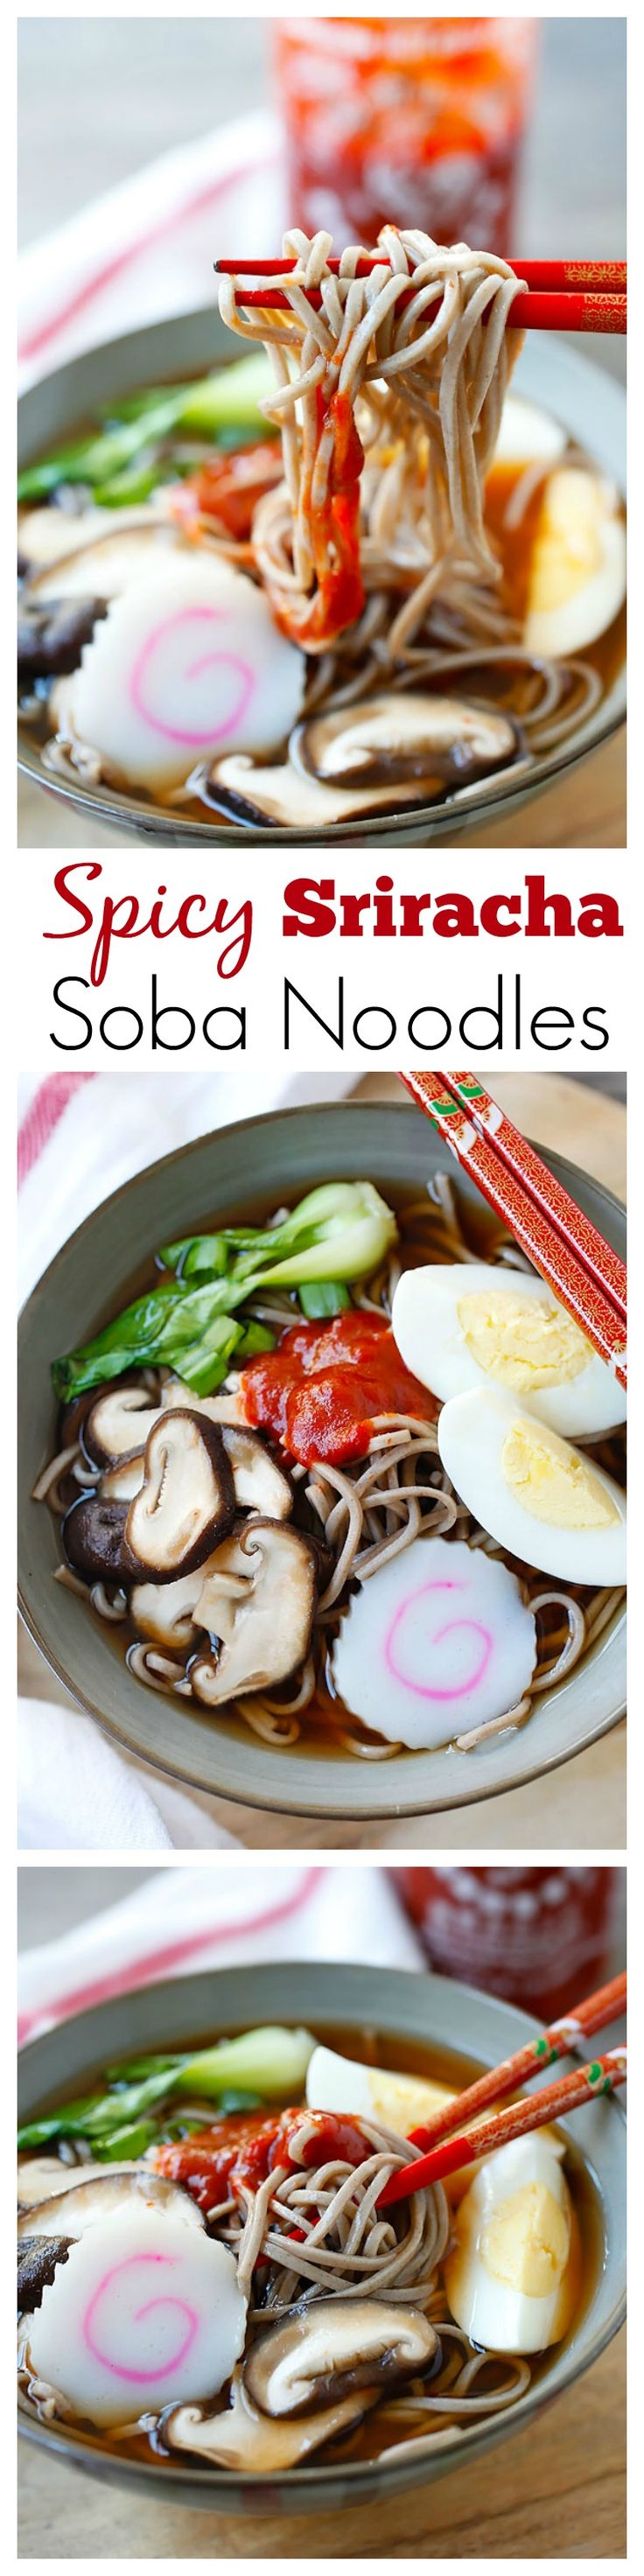 Spicy Sriracha Soba Noodle Soup – the easiest & most delicious noodle soup ever, with spicy Sriracha added to the broth and takes only 15 mins   rasamalaysia.com